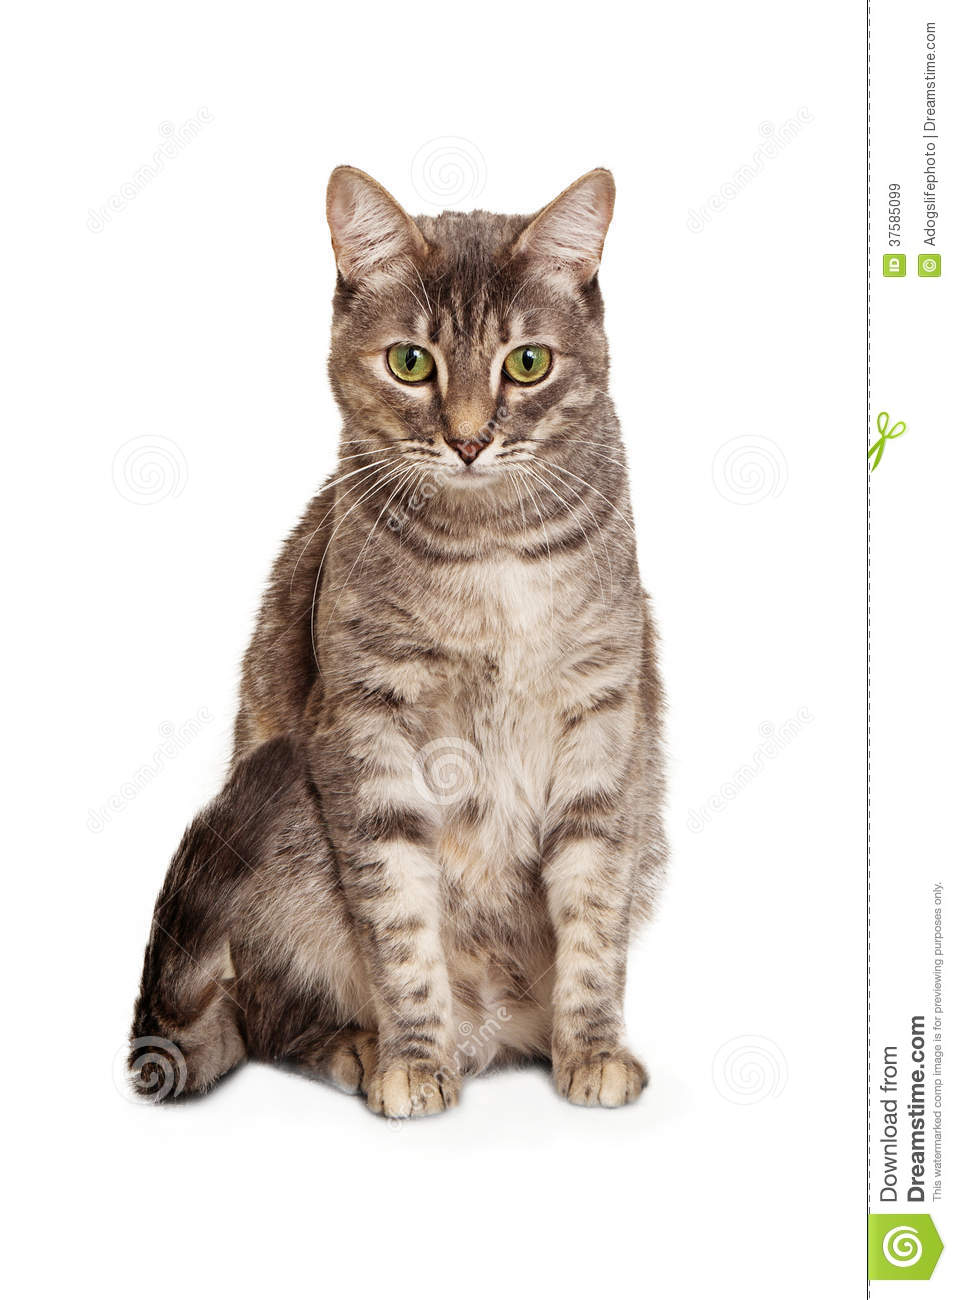 Young Tabby Cat Sitting Looking Down Stock Image - Image ... Tabby Cat Sitting Up